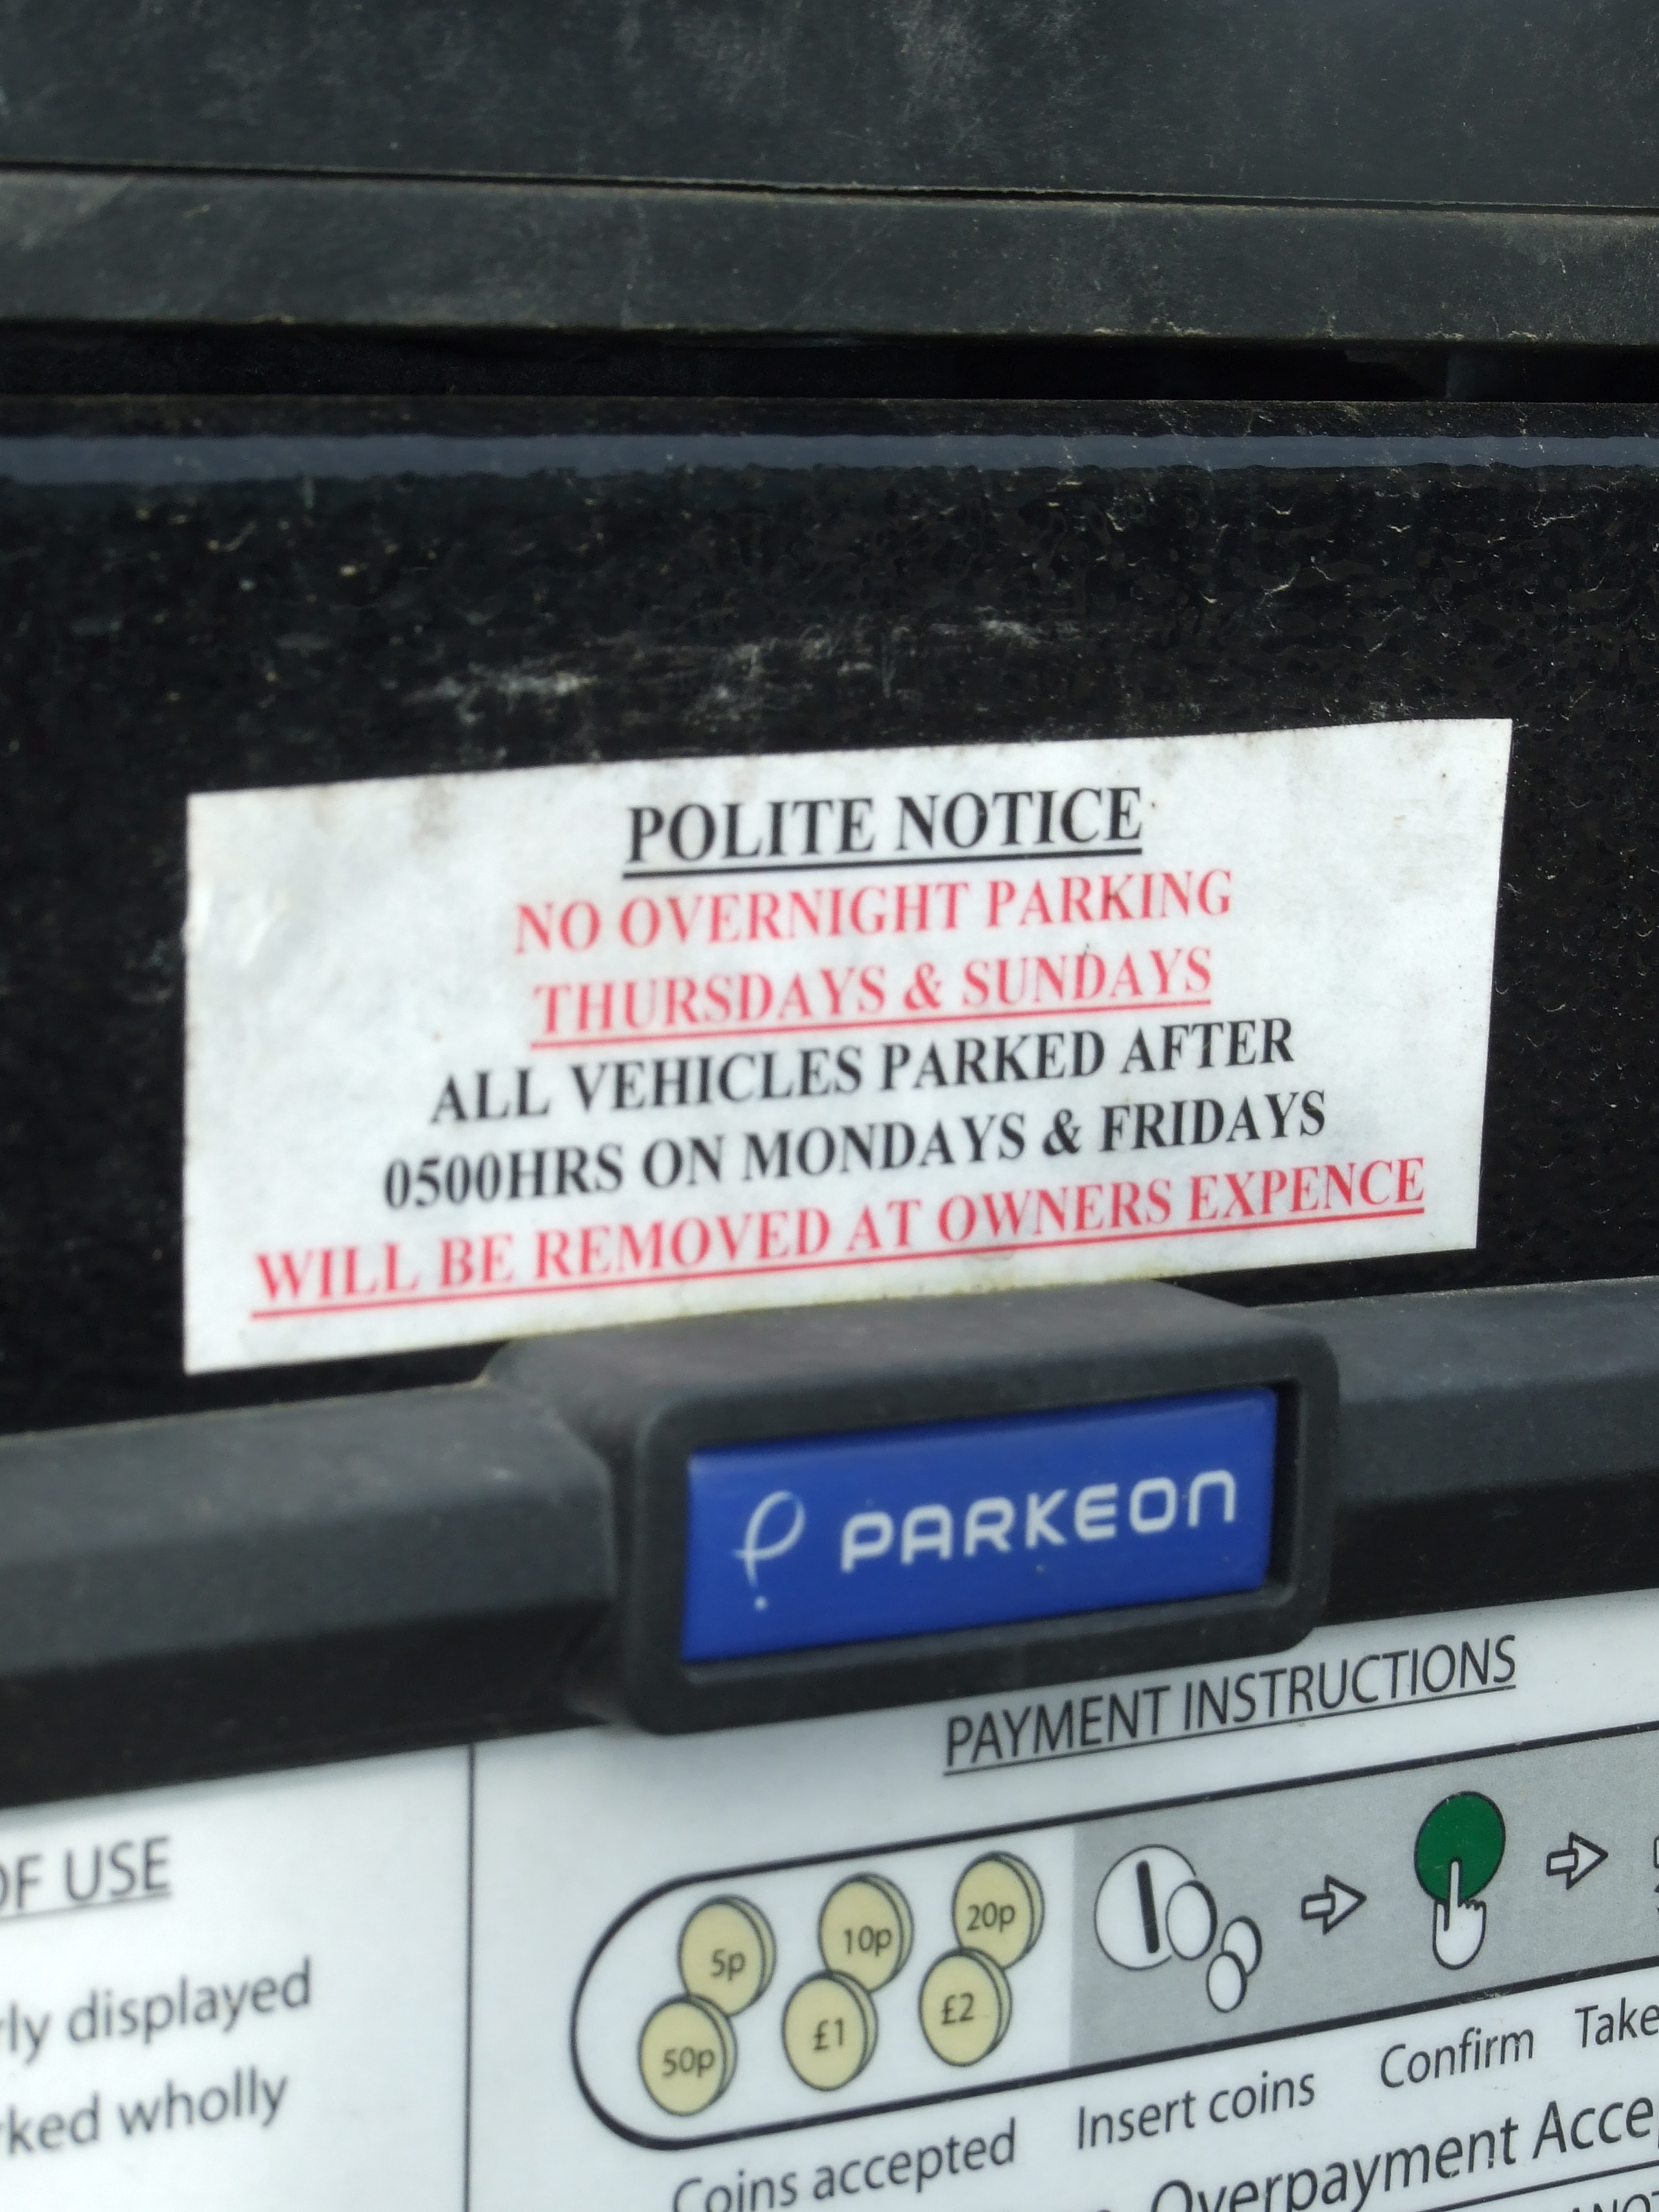 Parking notices in Cirencester's Market Place to be reviewed after bewildered motorist is towed